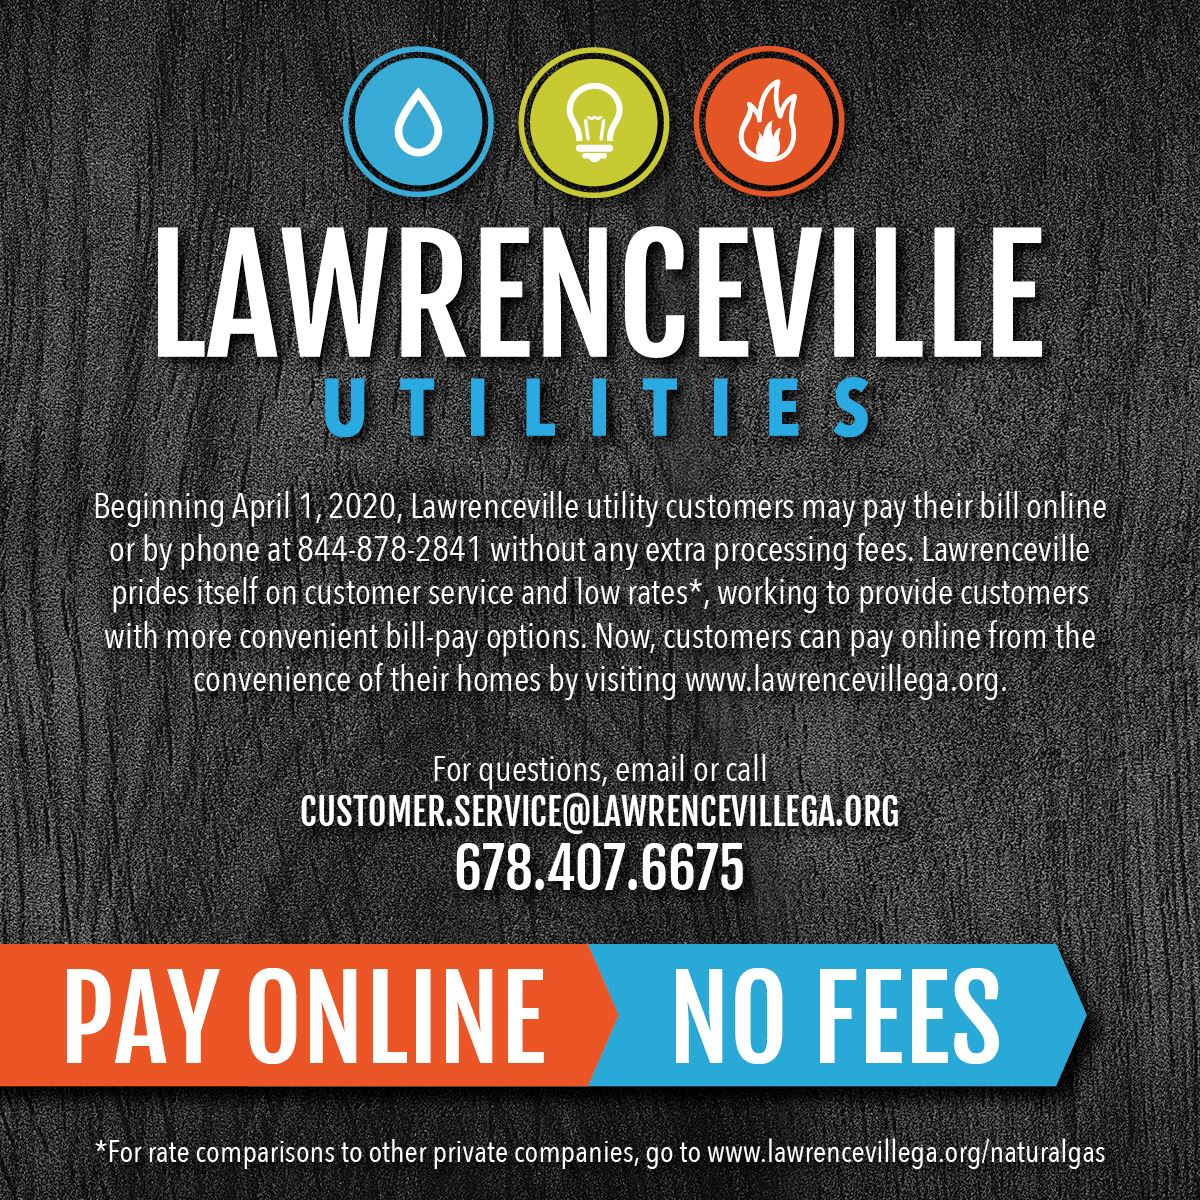 28683-City-Lville-Online-Bill-Pay-FB-ad-1200x1200-2